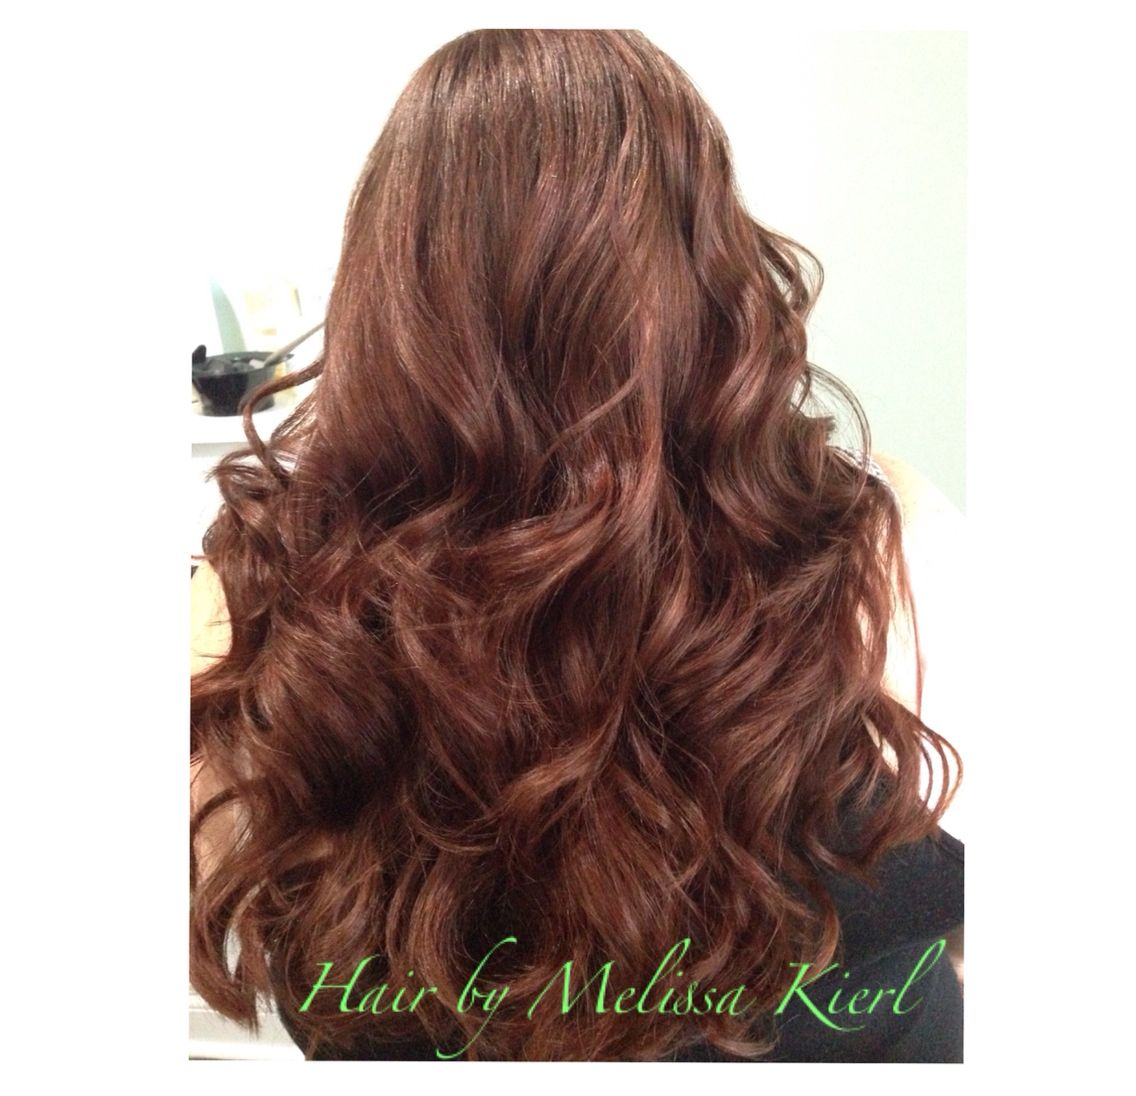 Auburn Hair Color With Curls Matrix Socolor Zone 1 3 Parts 5gc 1